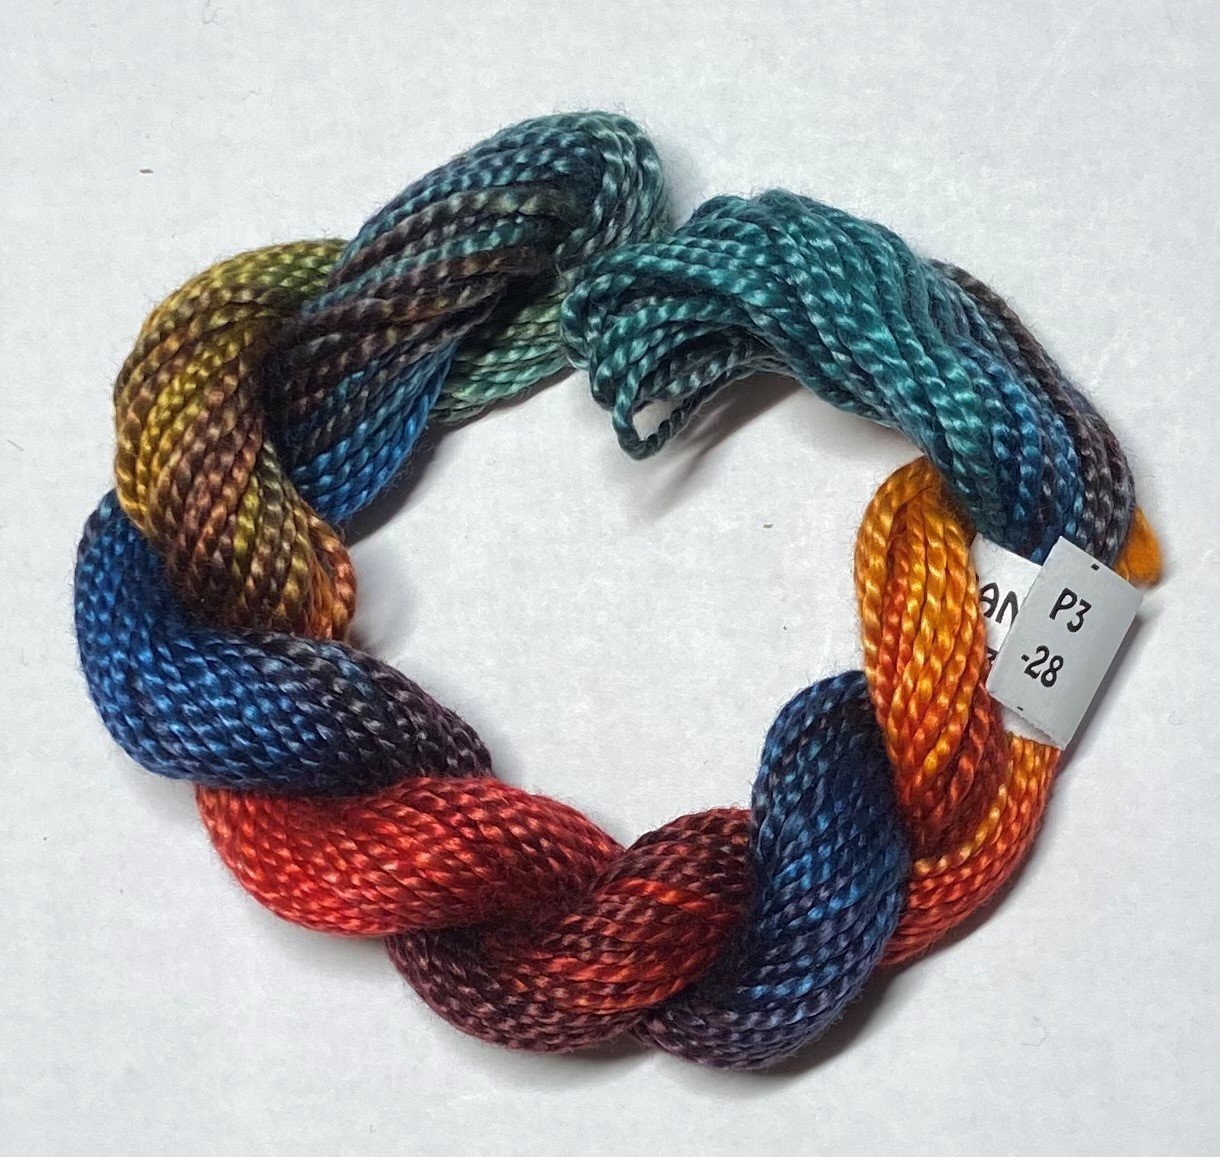 #3 Perle Cotton Rust/Teal